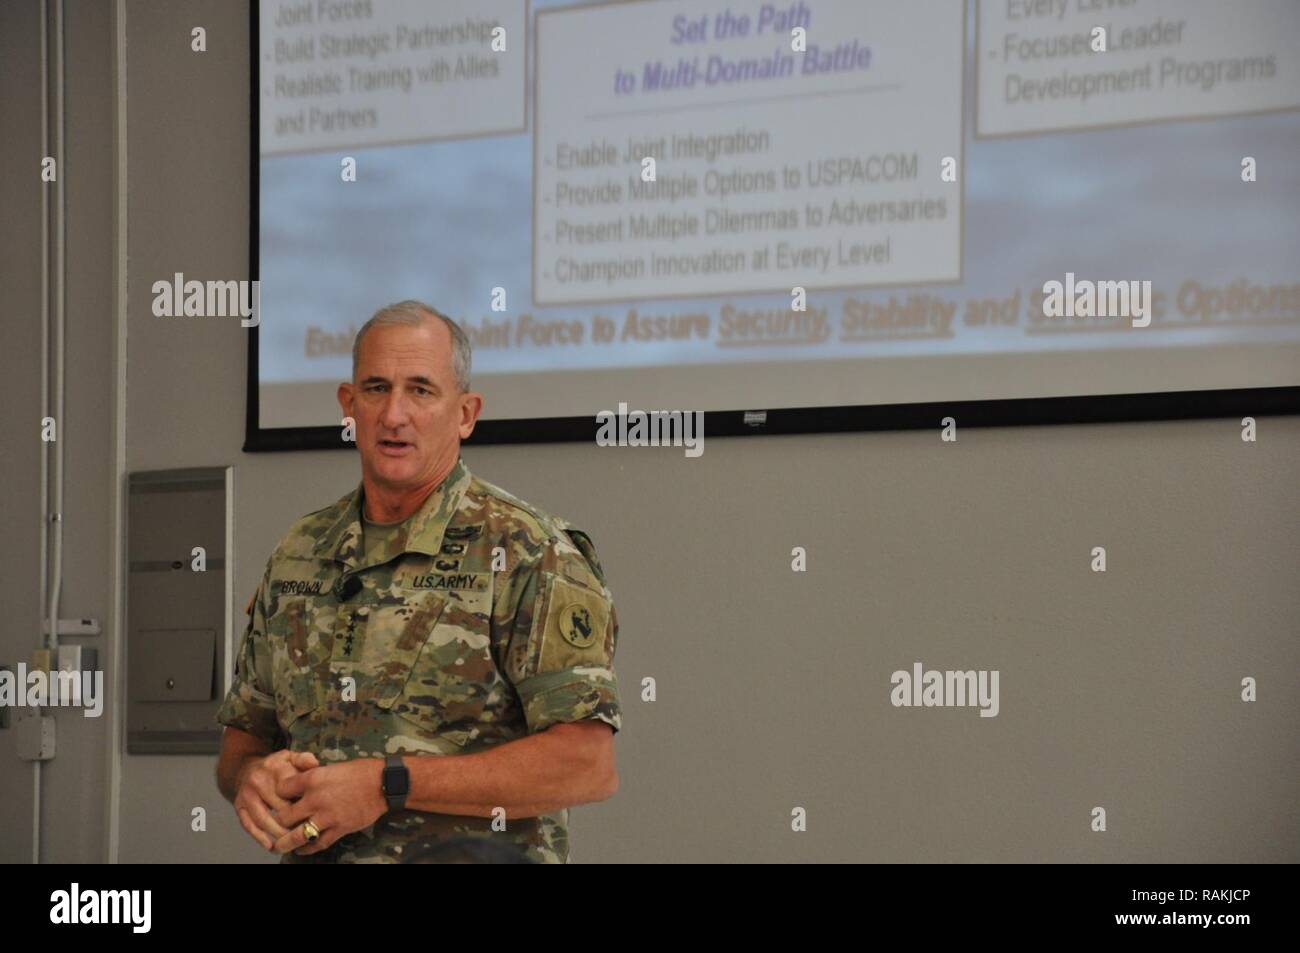 Gen. Robert B. Brown, Commanding General, U.S. Army Pacific (USARPAC) discusses the importance of readiness and integrating the 'Total Army' concept among all troops. - Stock Image